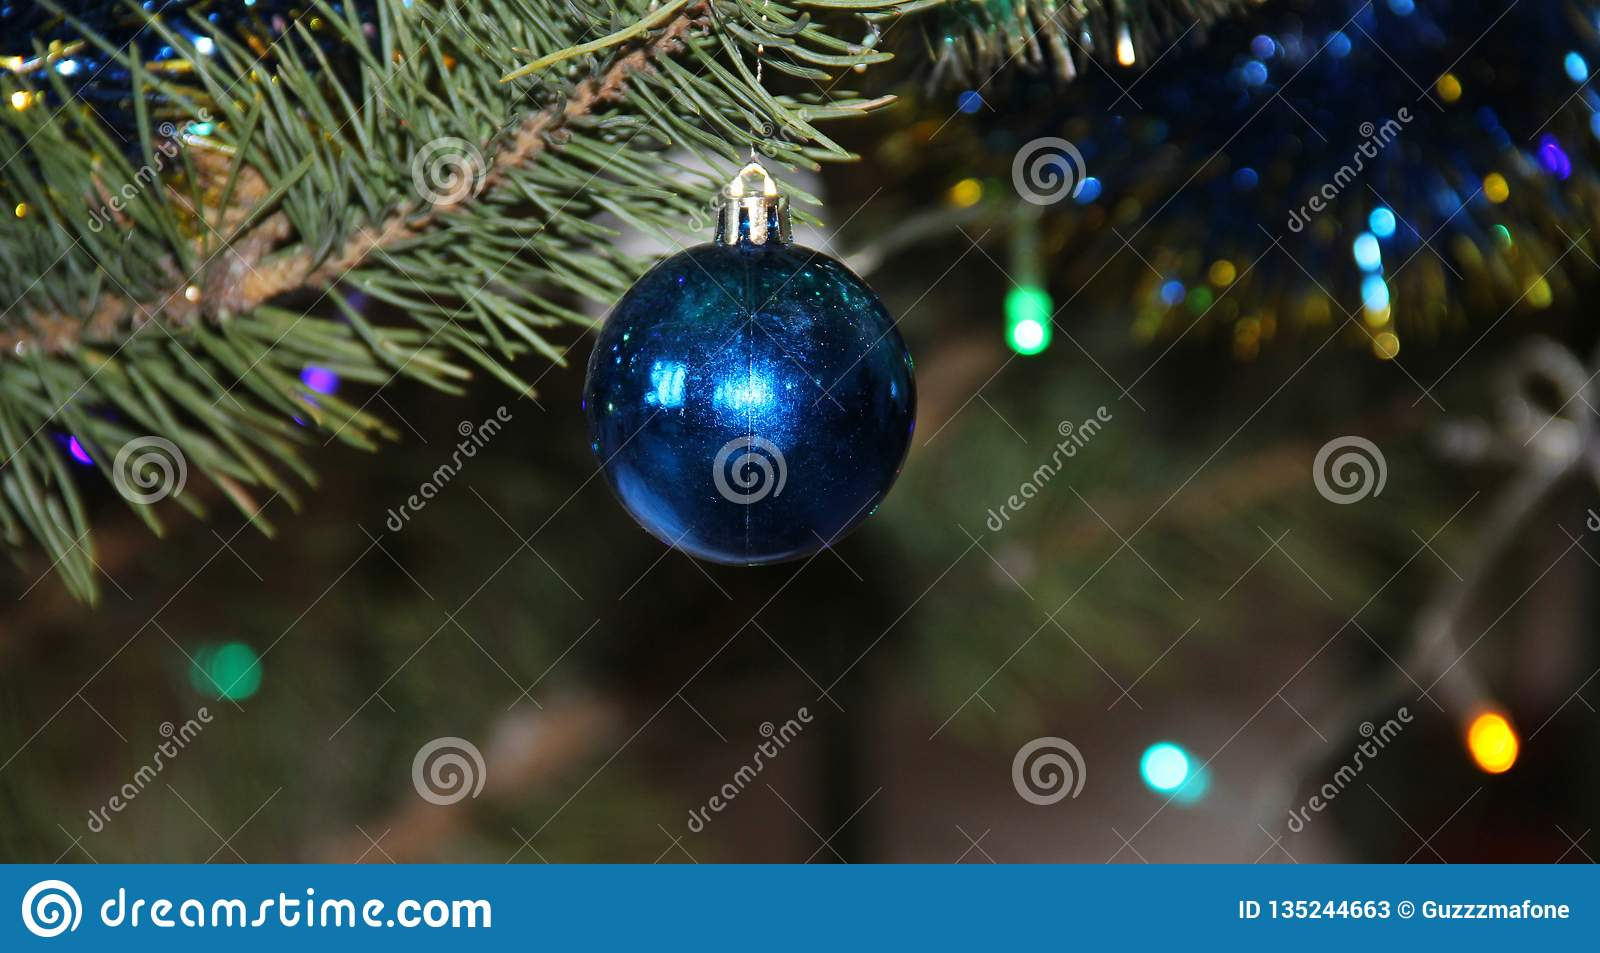 Where Did Christmas Trees Originate.Christmas Toys On The Tree Stock Image Image Of Decorated